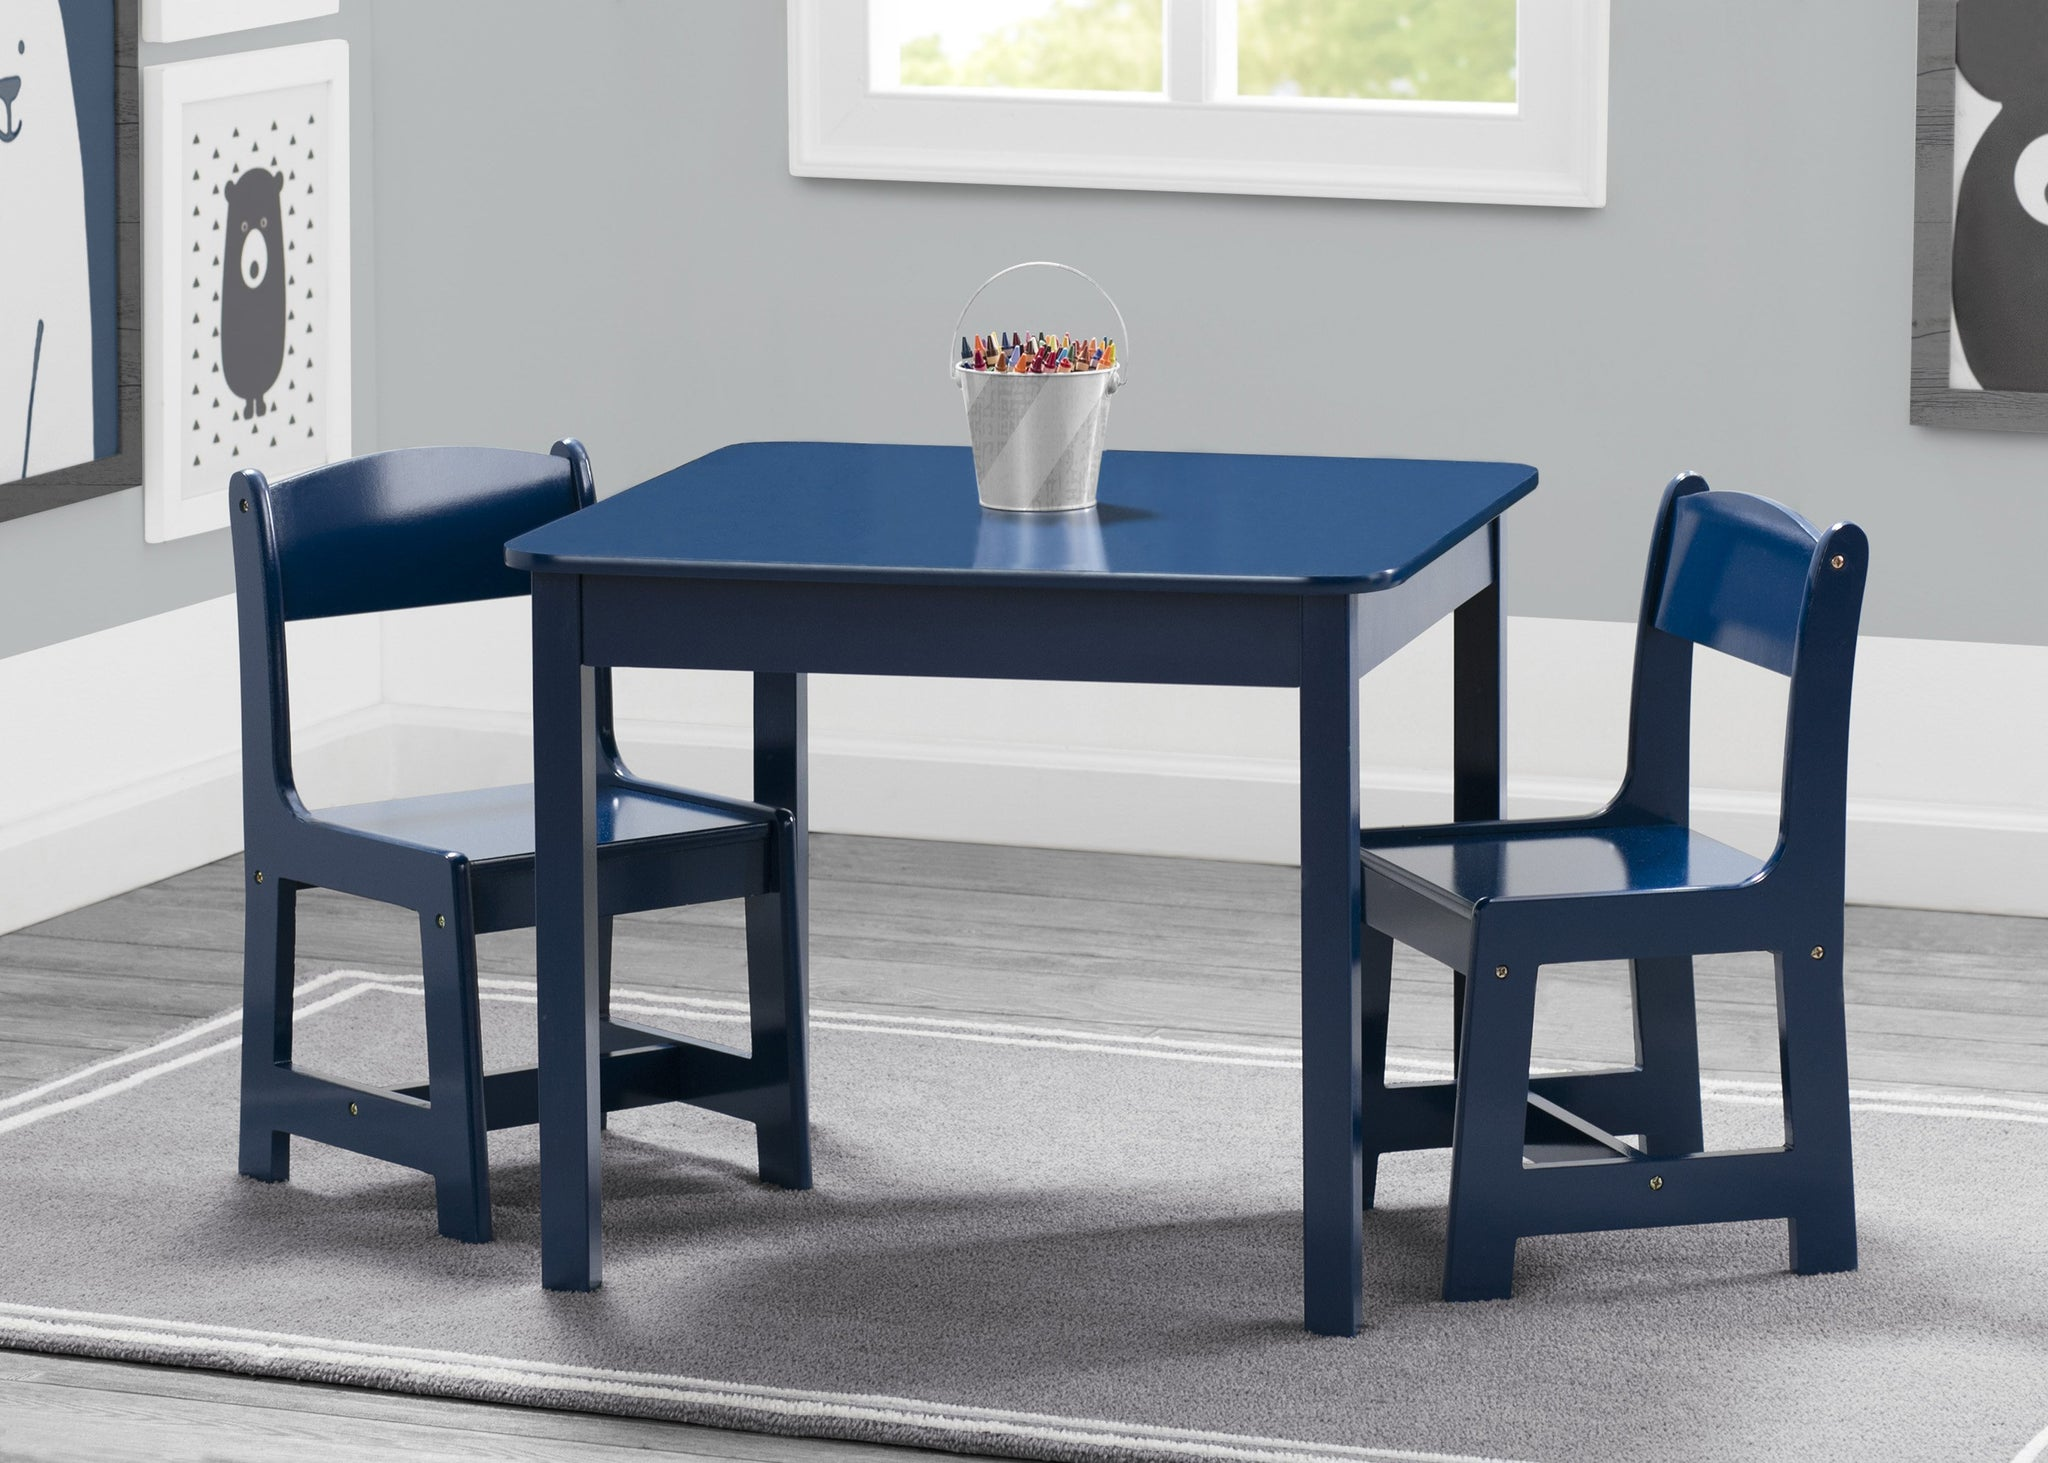 Delta Children Deep Blue (295C) MySize Table & Chairs Set, Hangtag View